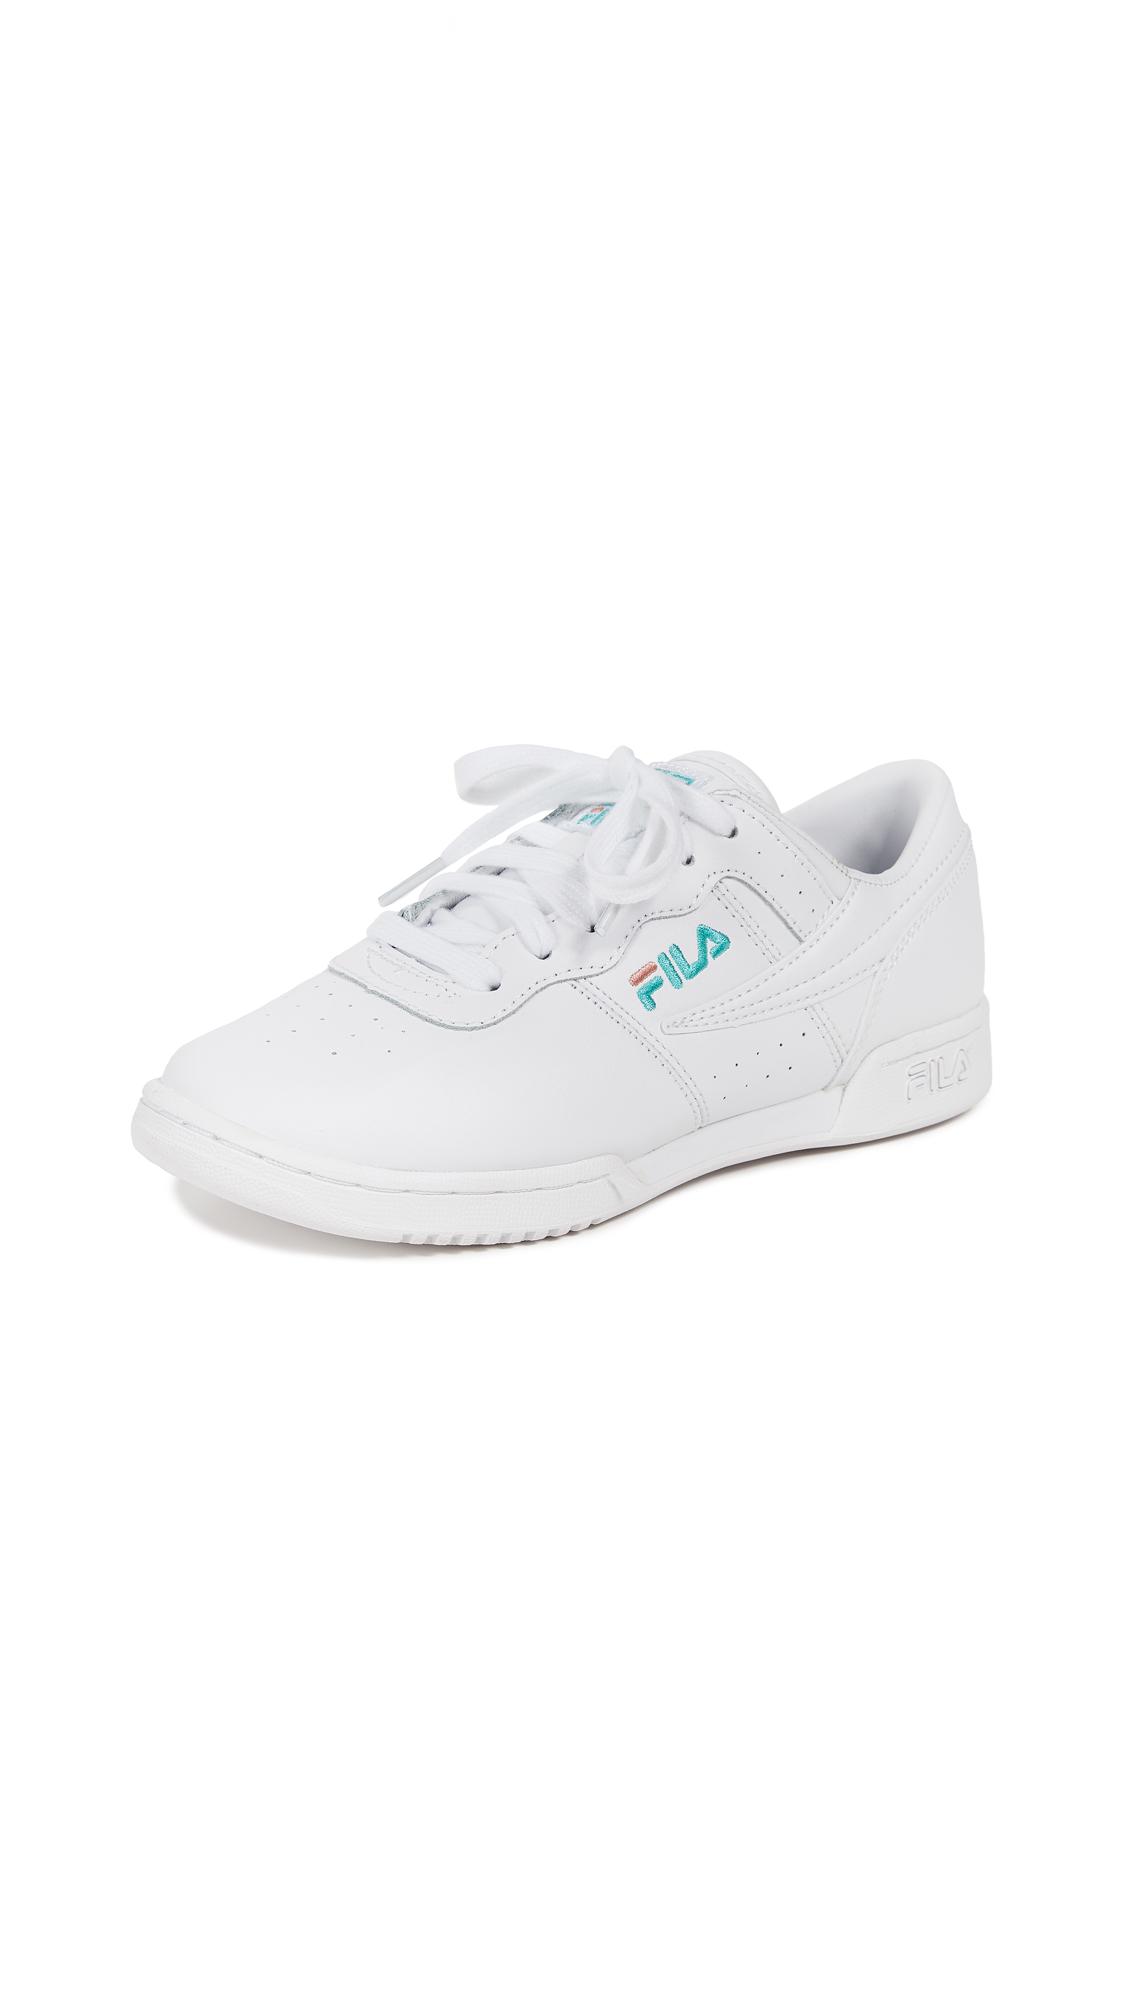 Fila Original Fitness Sneakers - White